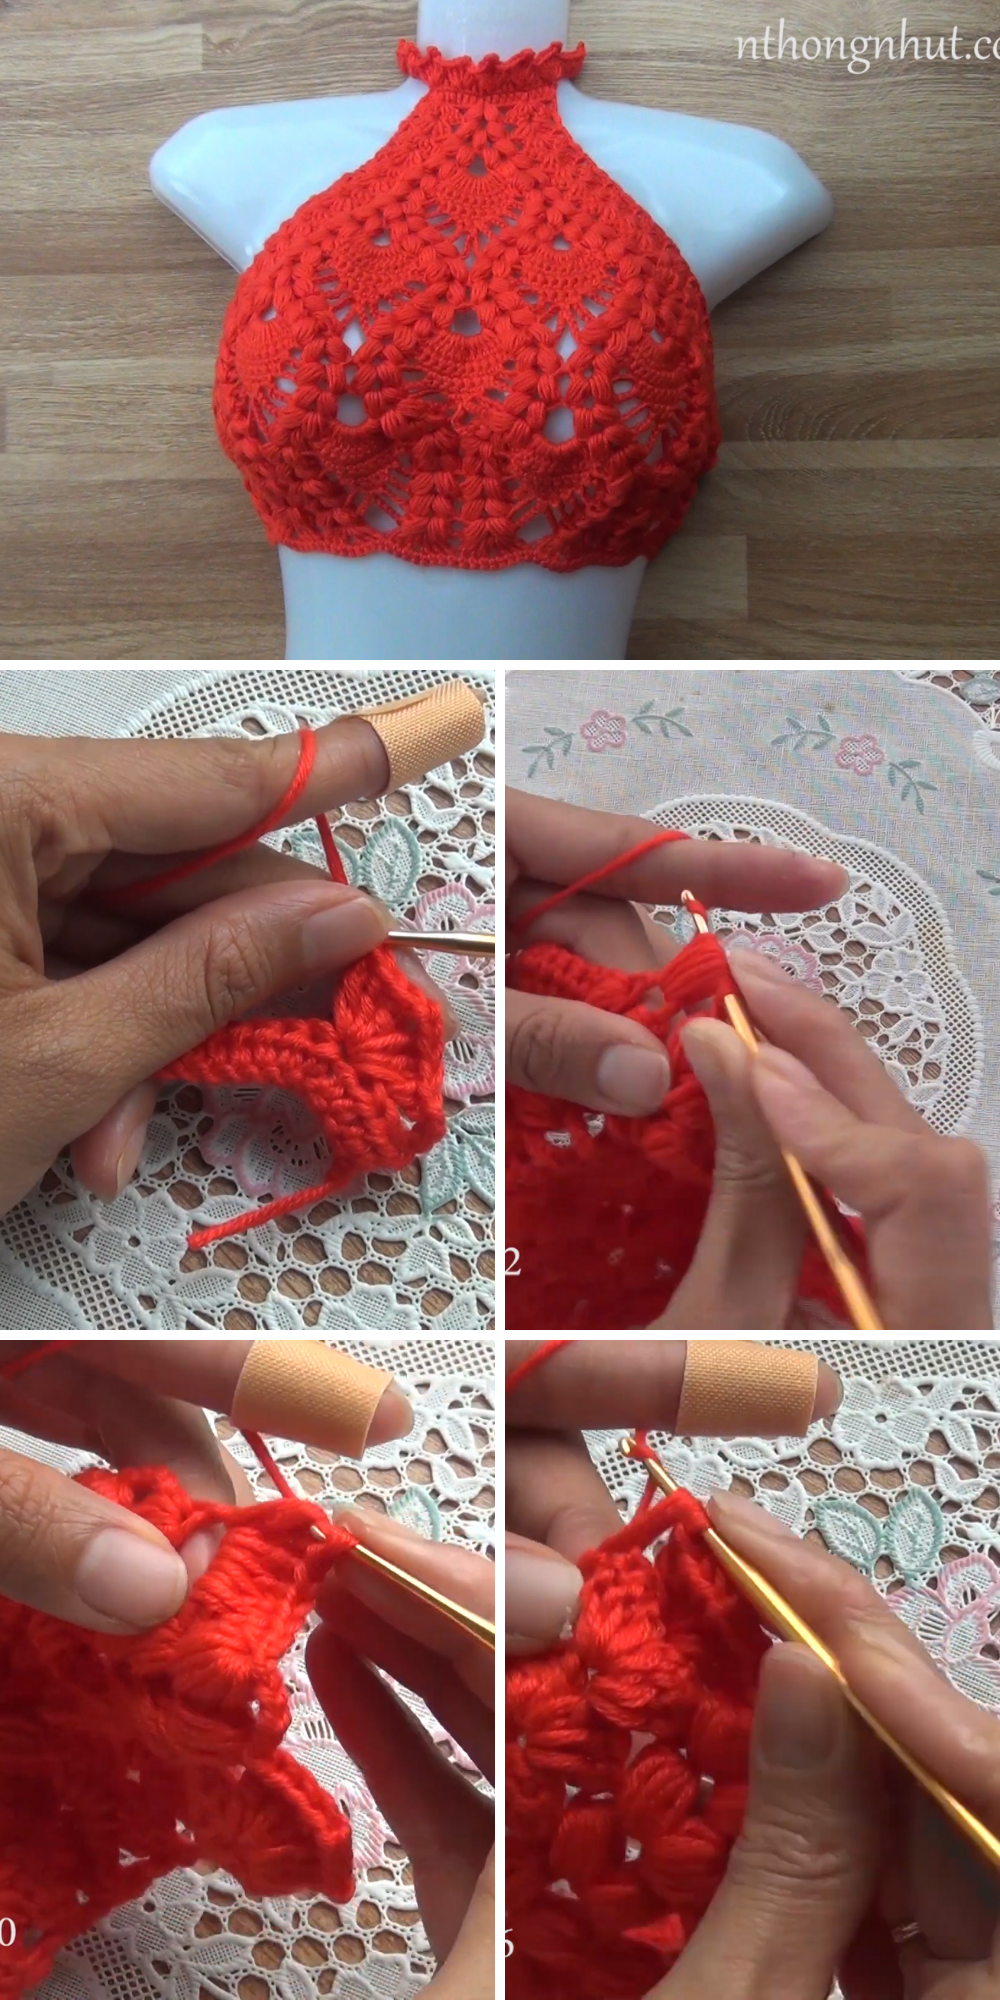 Crochet Bikini Top Crochet Crop Top Free Video Tutorial